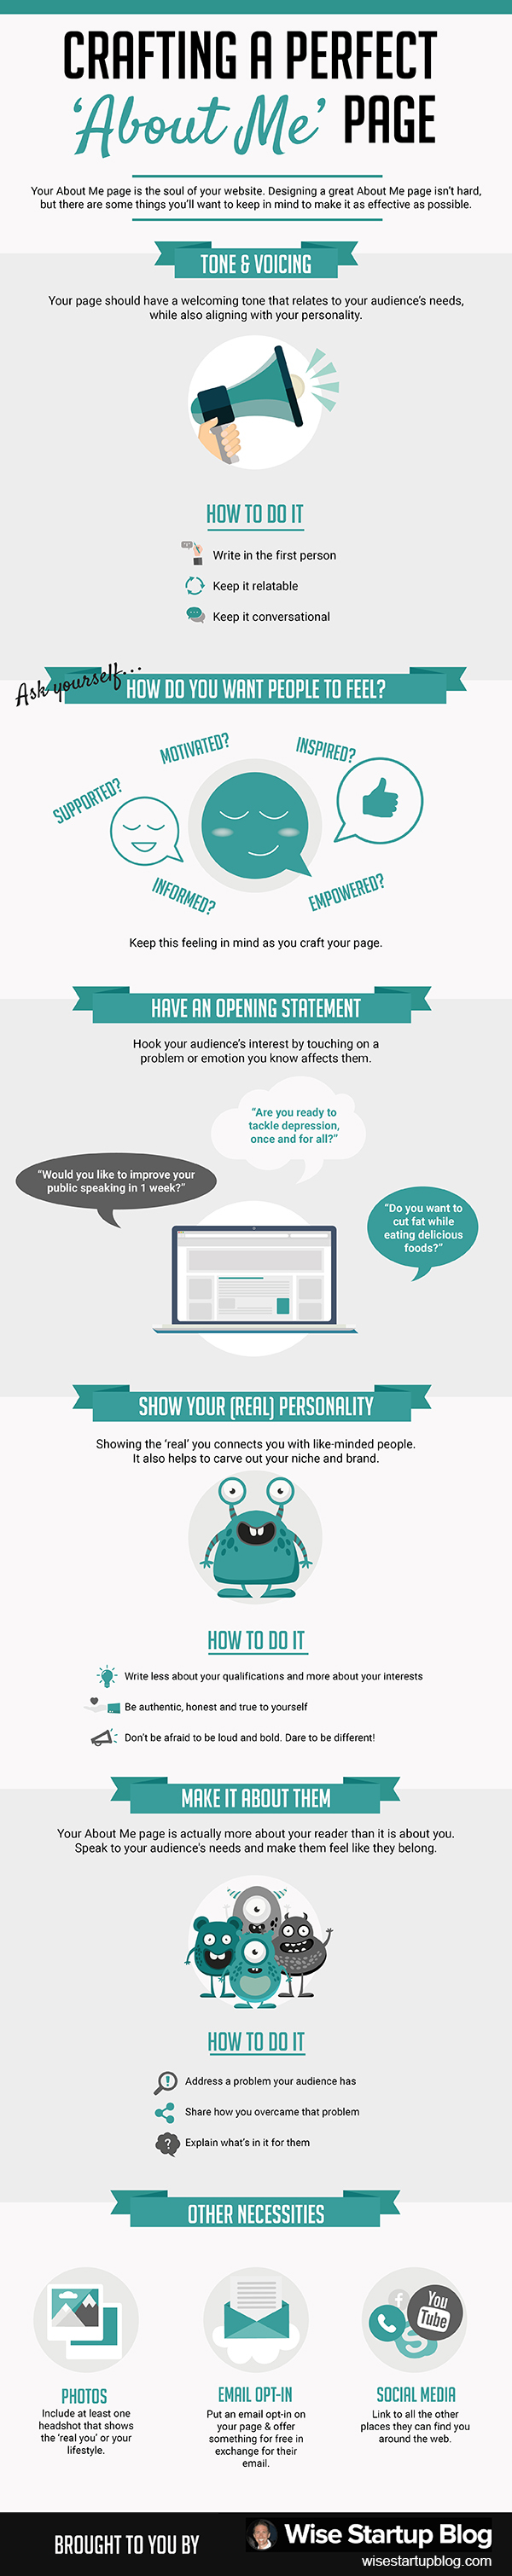 14-tips-to-create-the-perfect-about-me-page-for-your-website